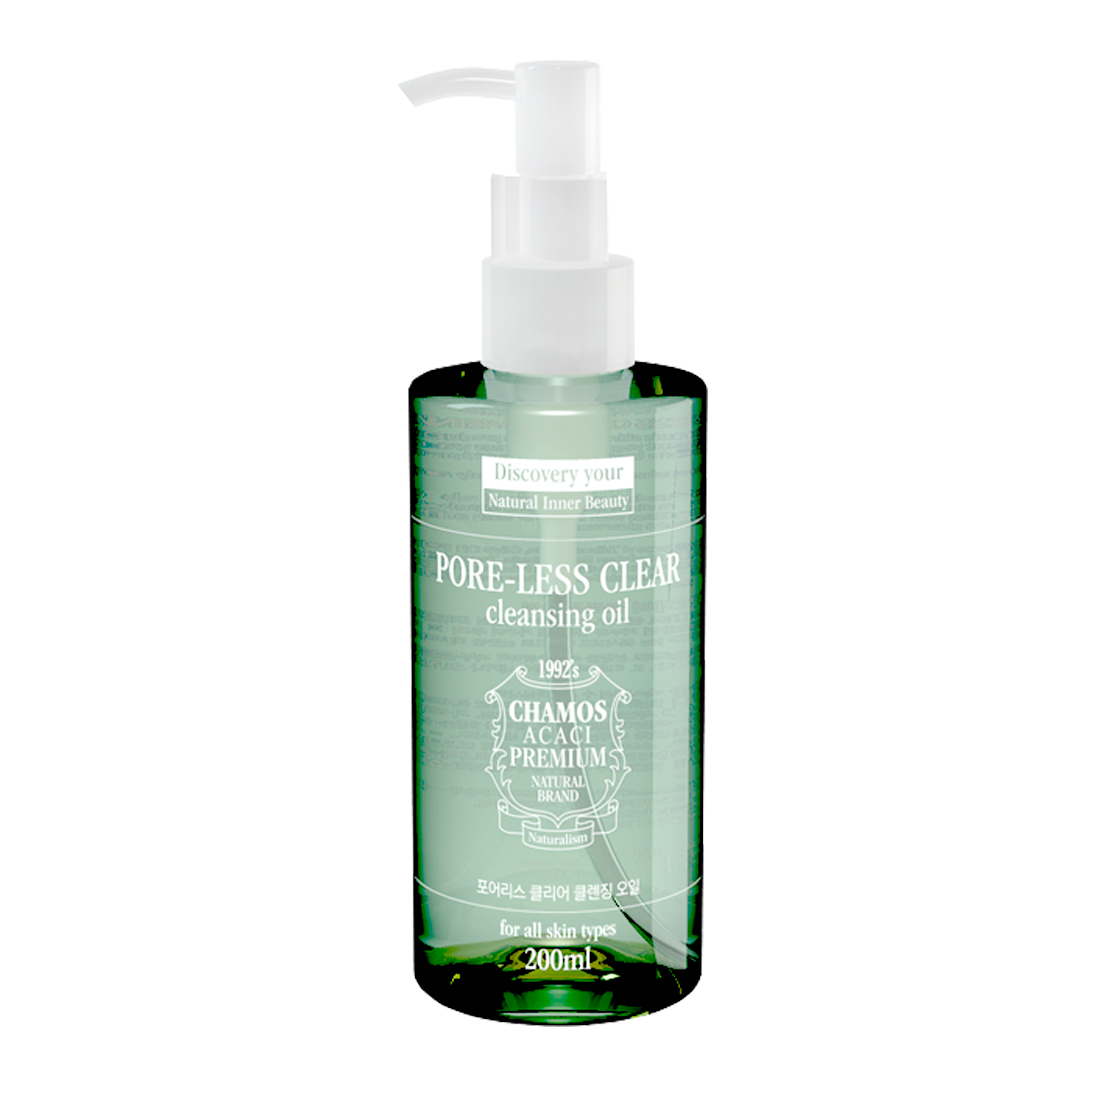 chamos ACACI Pore-Less Clear Cleansing Oil